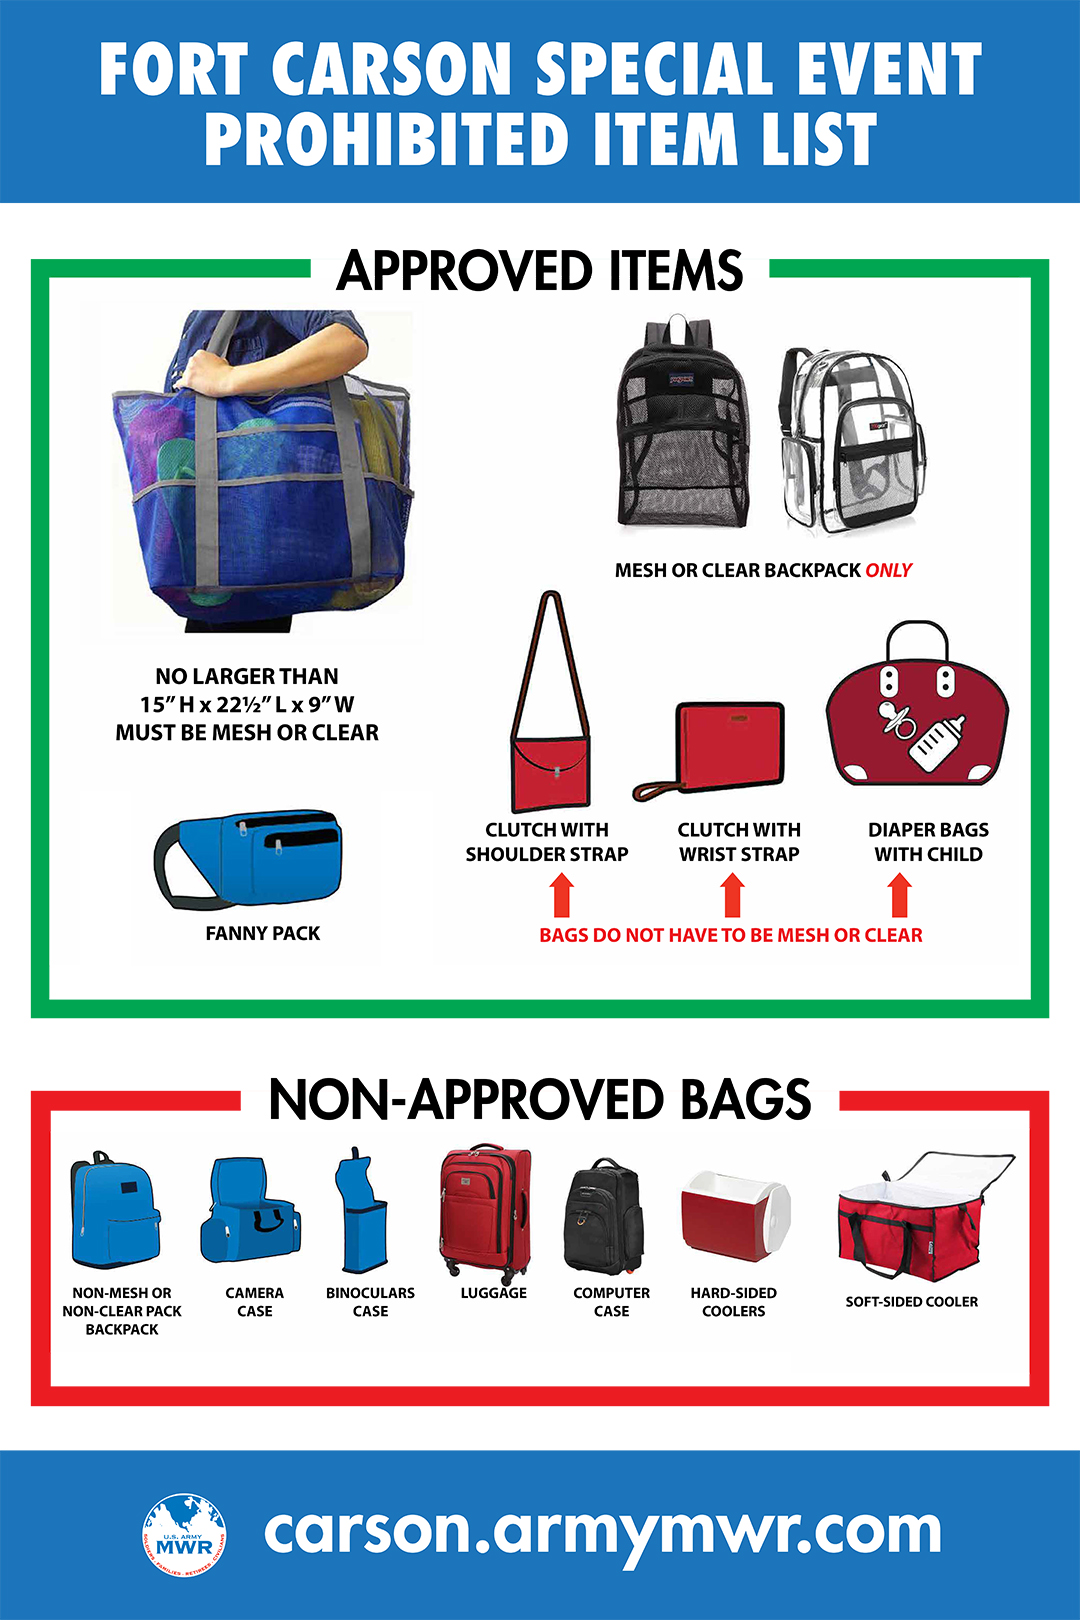 Fort Carson Bag Policy